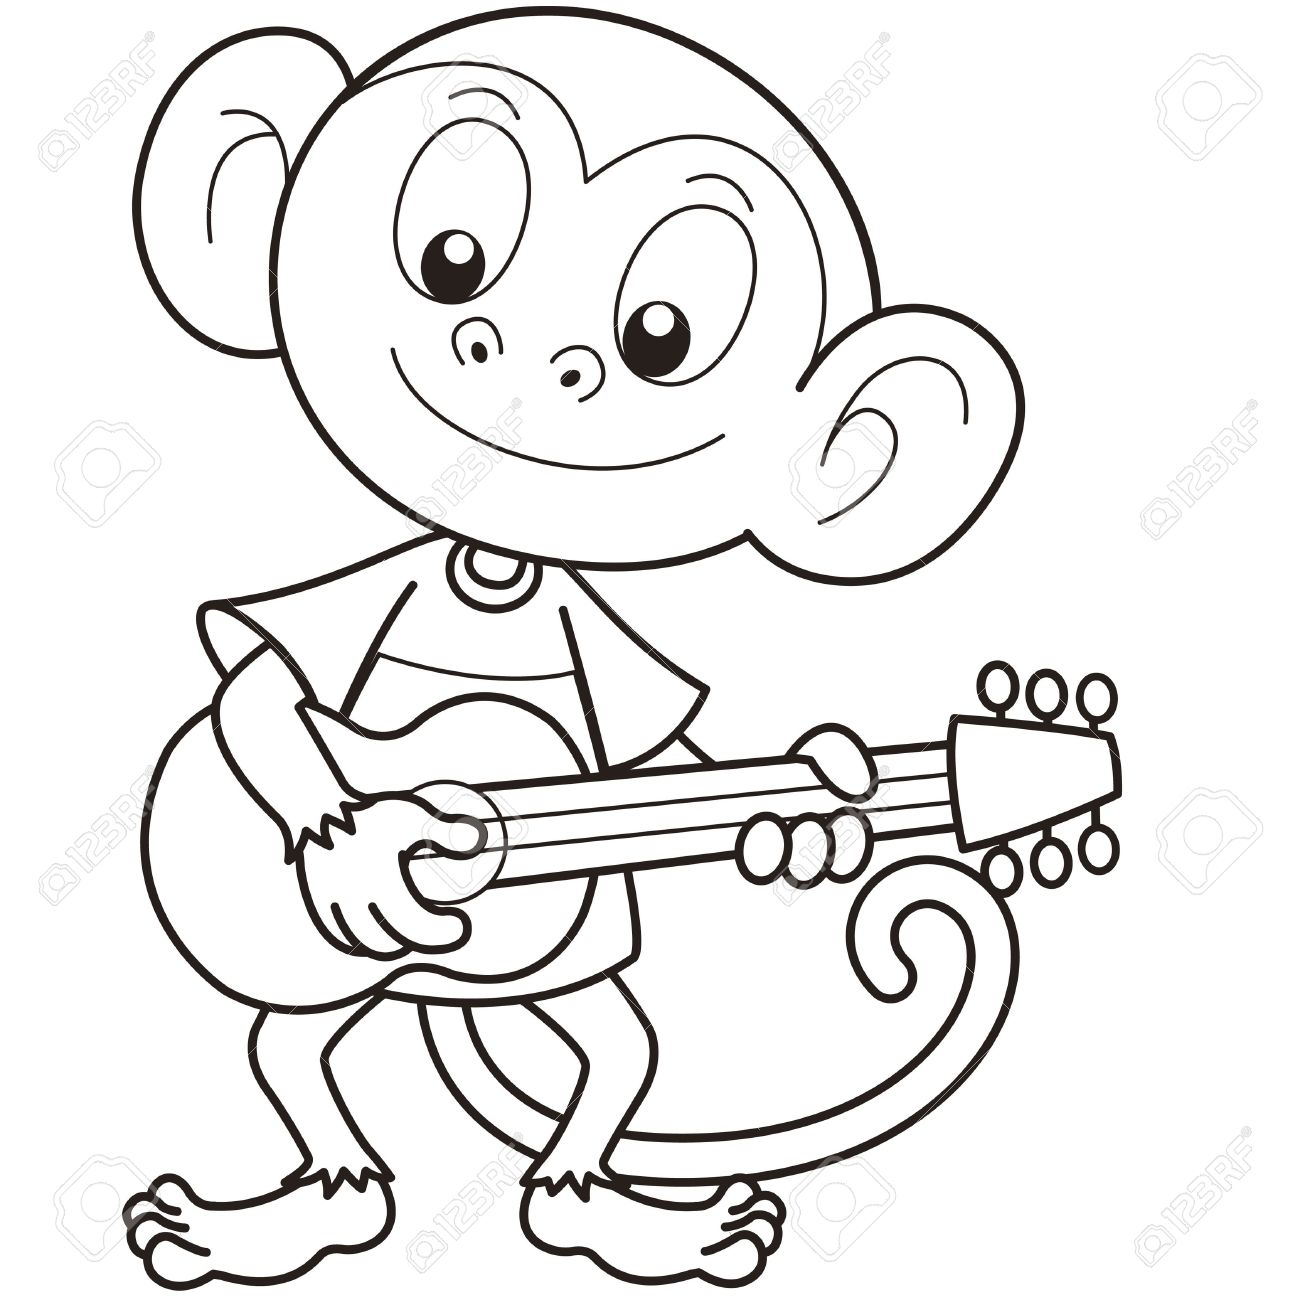 1300x1300 Cartoon Monkey Playing A Guitar Black And White Royalty Free